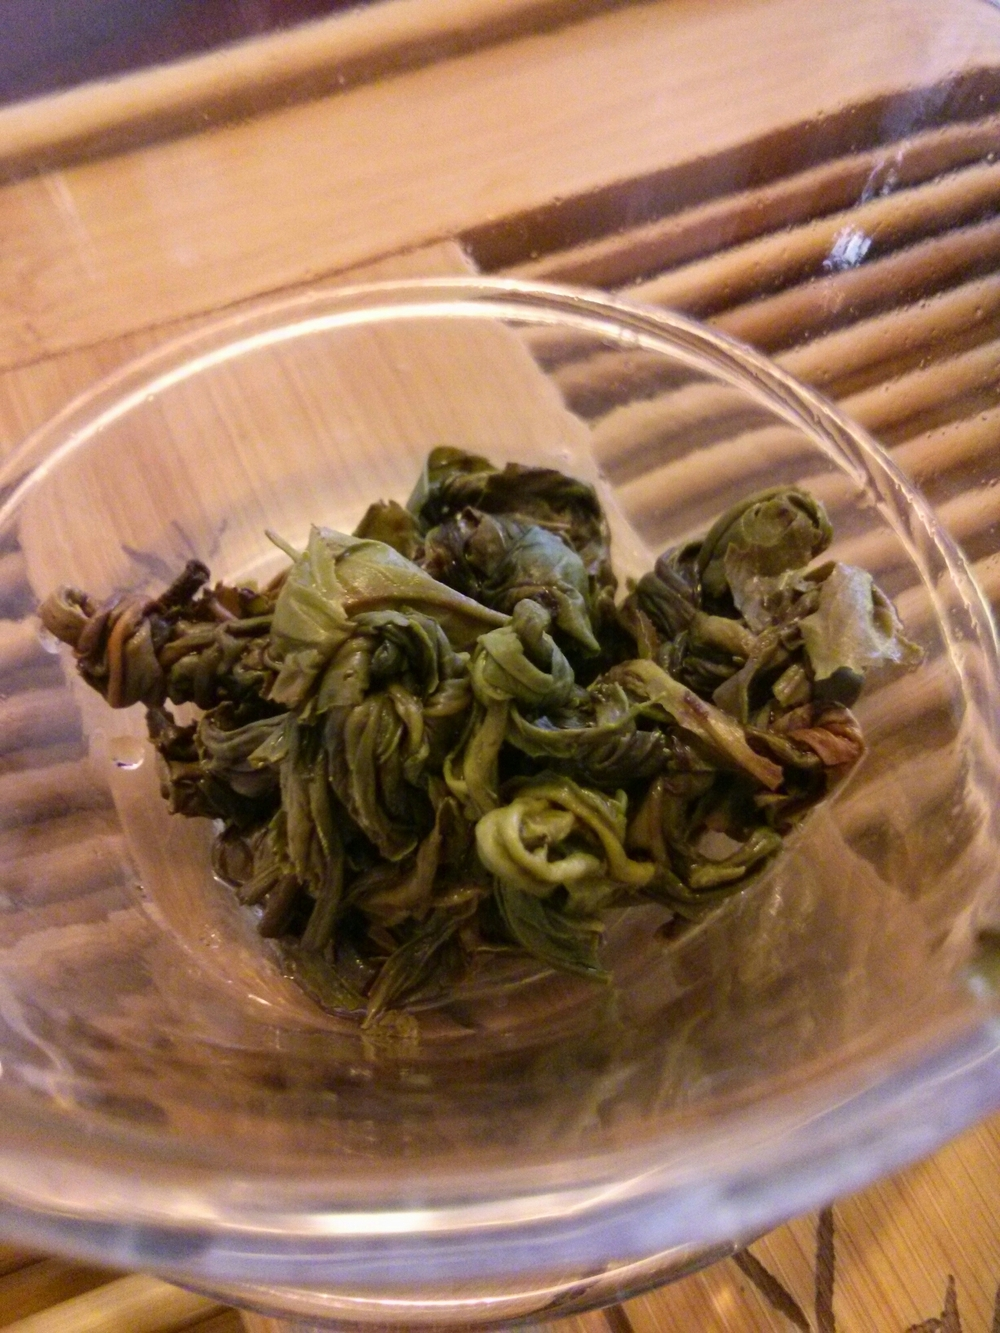 Opened leaves after a few steepings. The leaves were a beautiful green color with little withering. That may account for the similarities to Bi Luo Chun, a green tea.